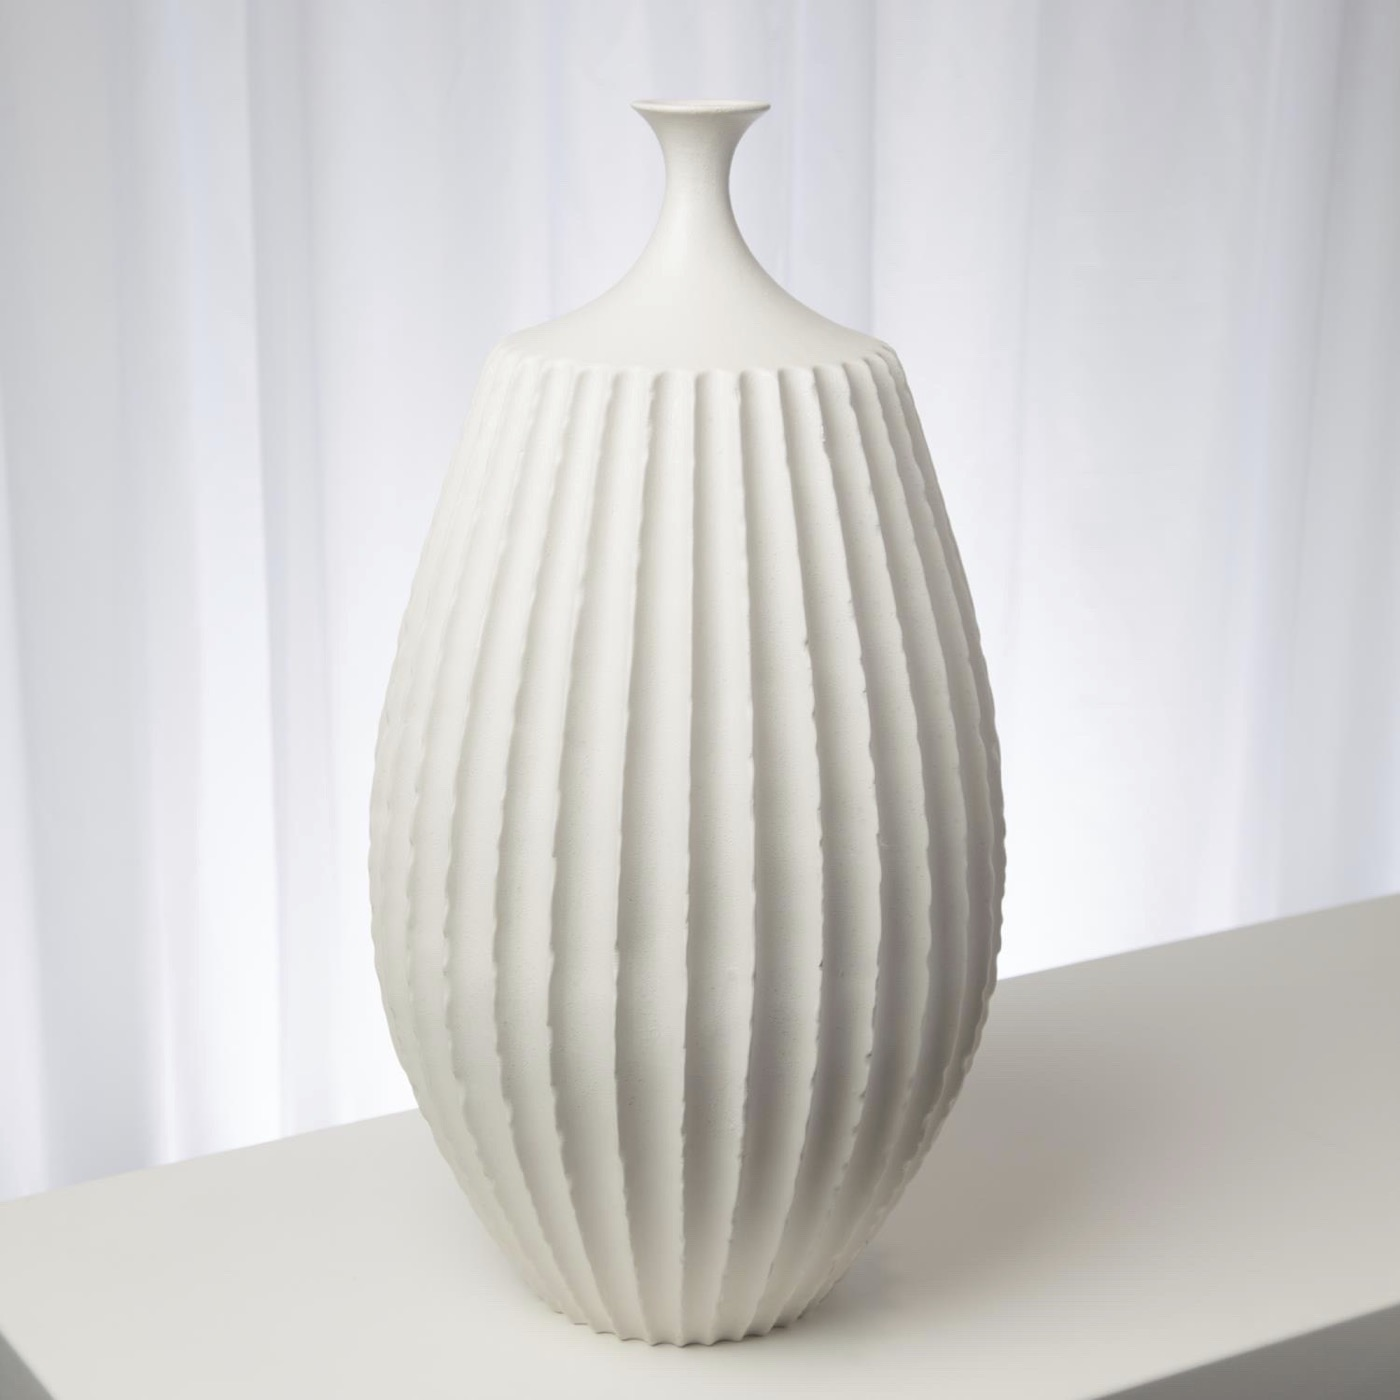 Grillo Ceramic Vases | White